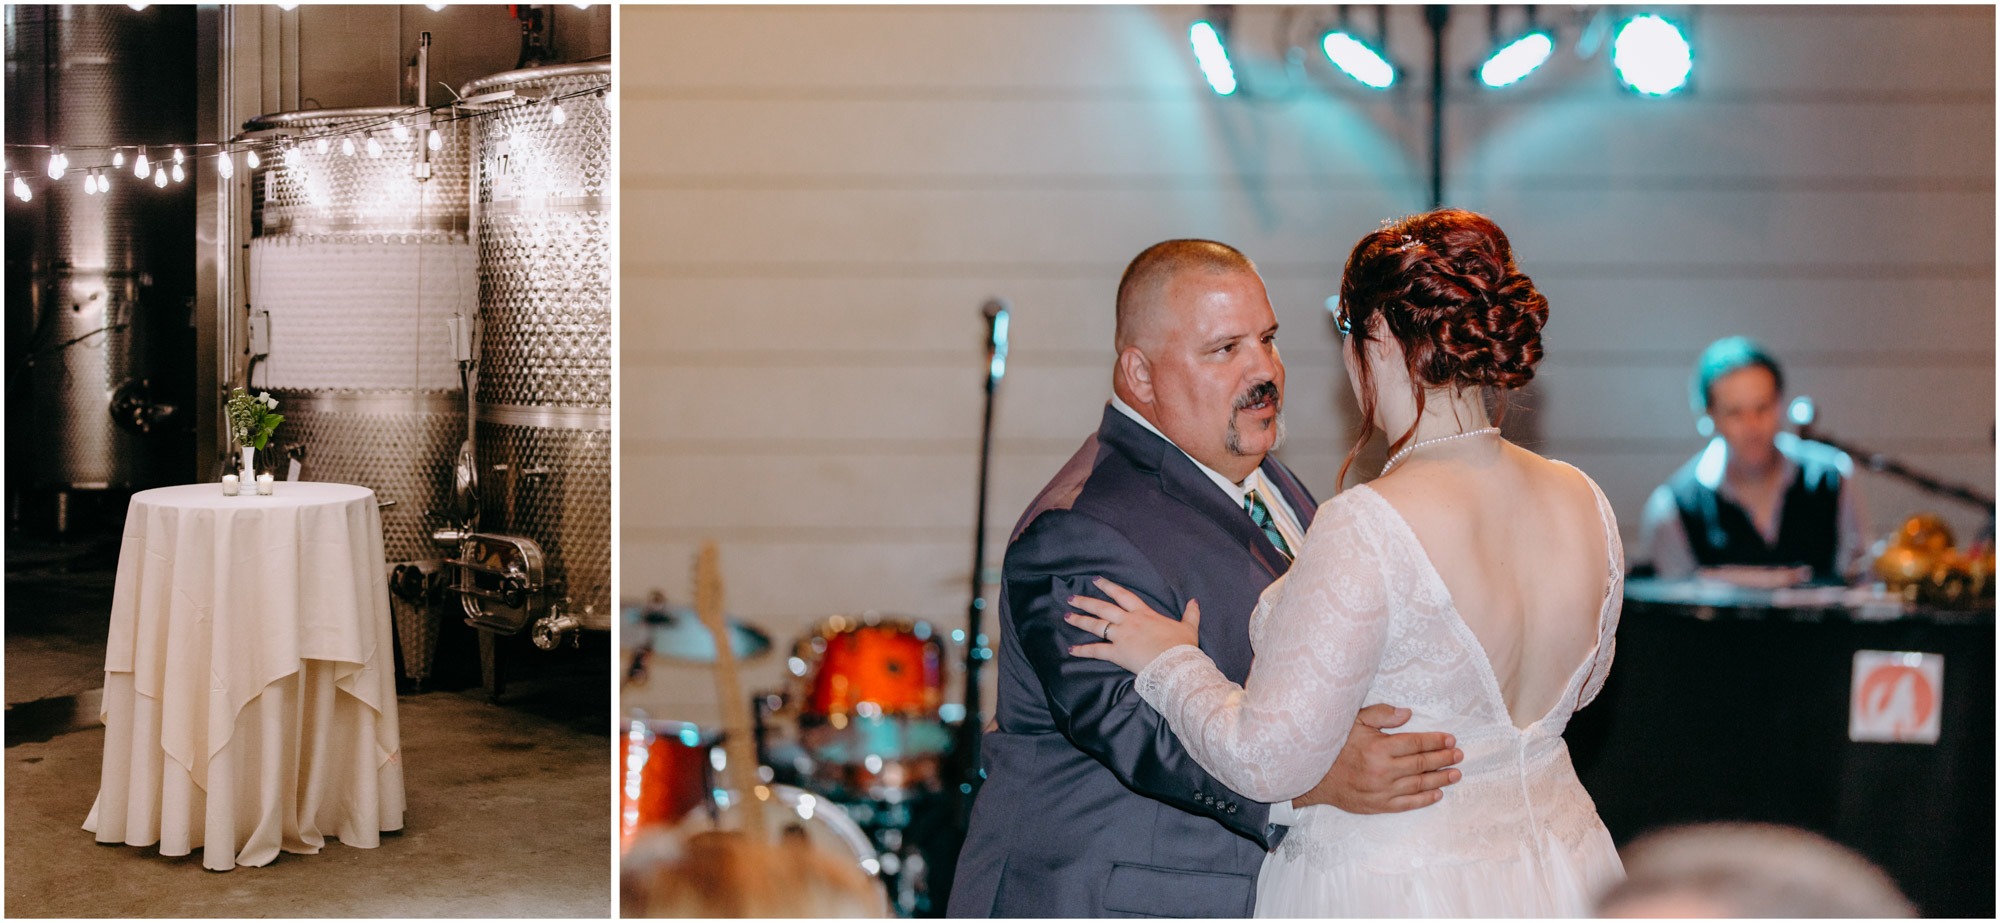 Father and daughter dance during reception - by Ashleigh Laureen Photography at LaBelle Winery in Amherst, New Hampshire